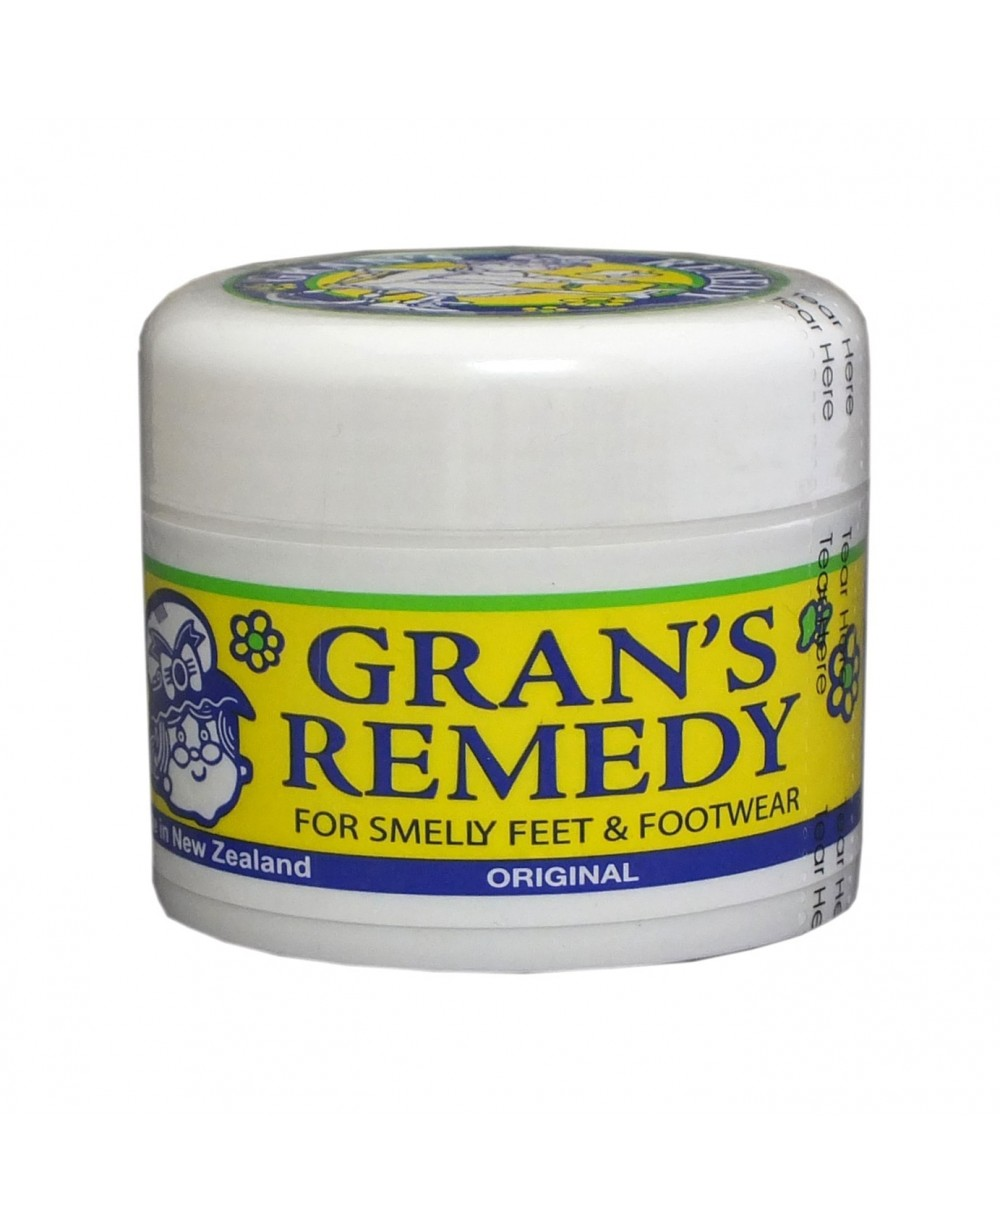 Gran's Remedy Original Foot Powder for Smelly Feet And Footwear